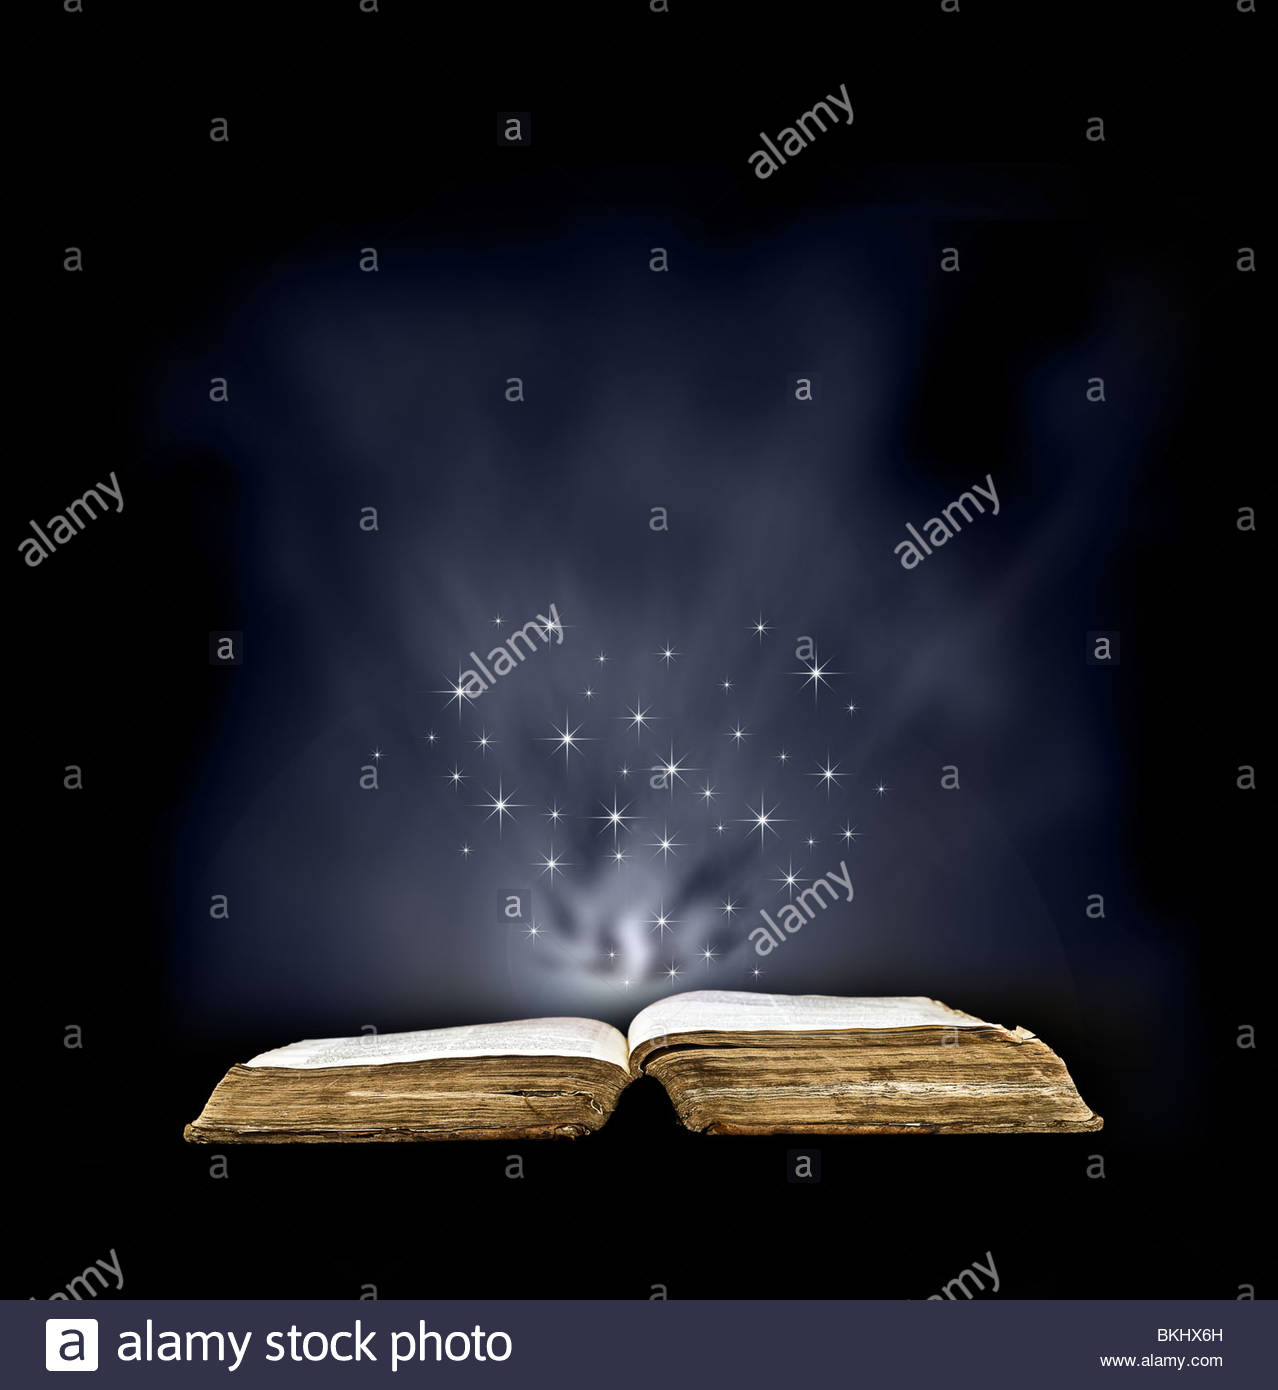 magic stock photos magic